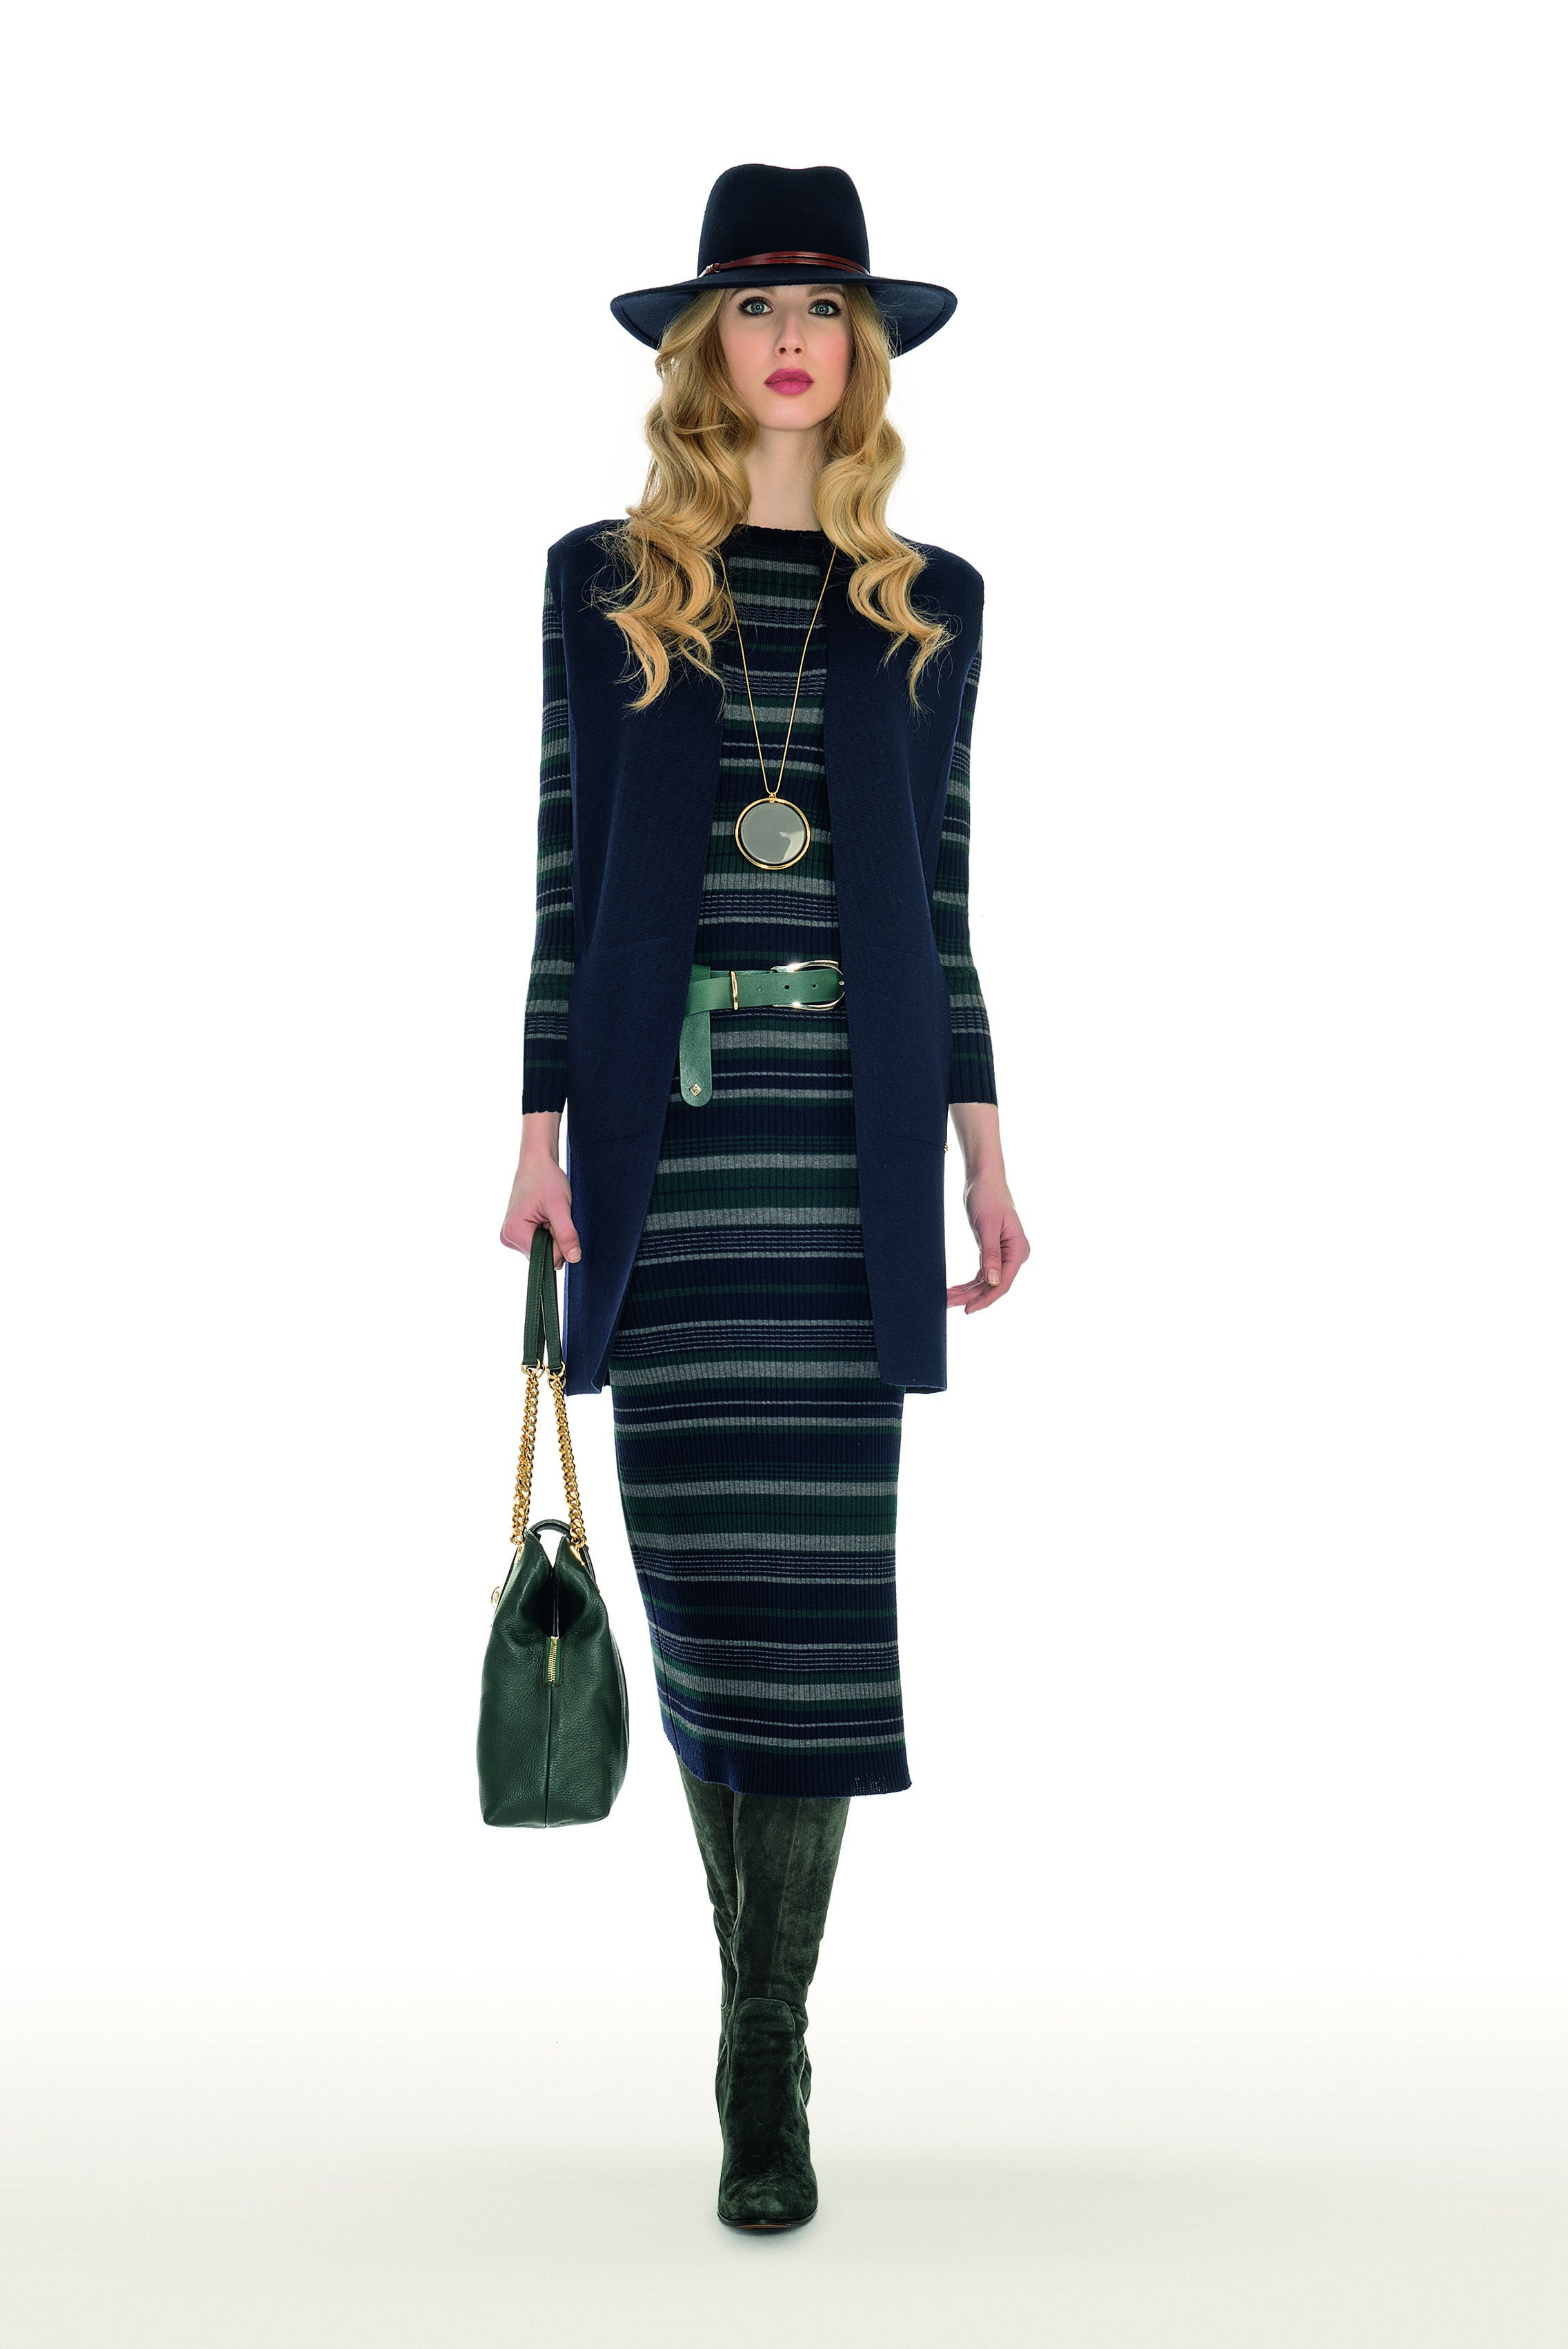 d9a7562e33c6 Luisa Spagnoli Opens First UK Store. - Life   Soul Lifestyle